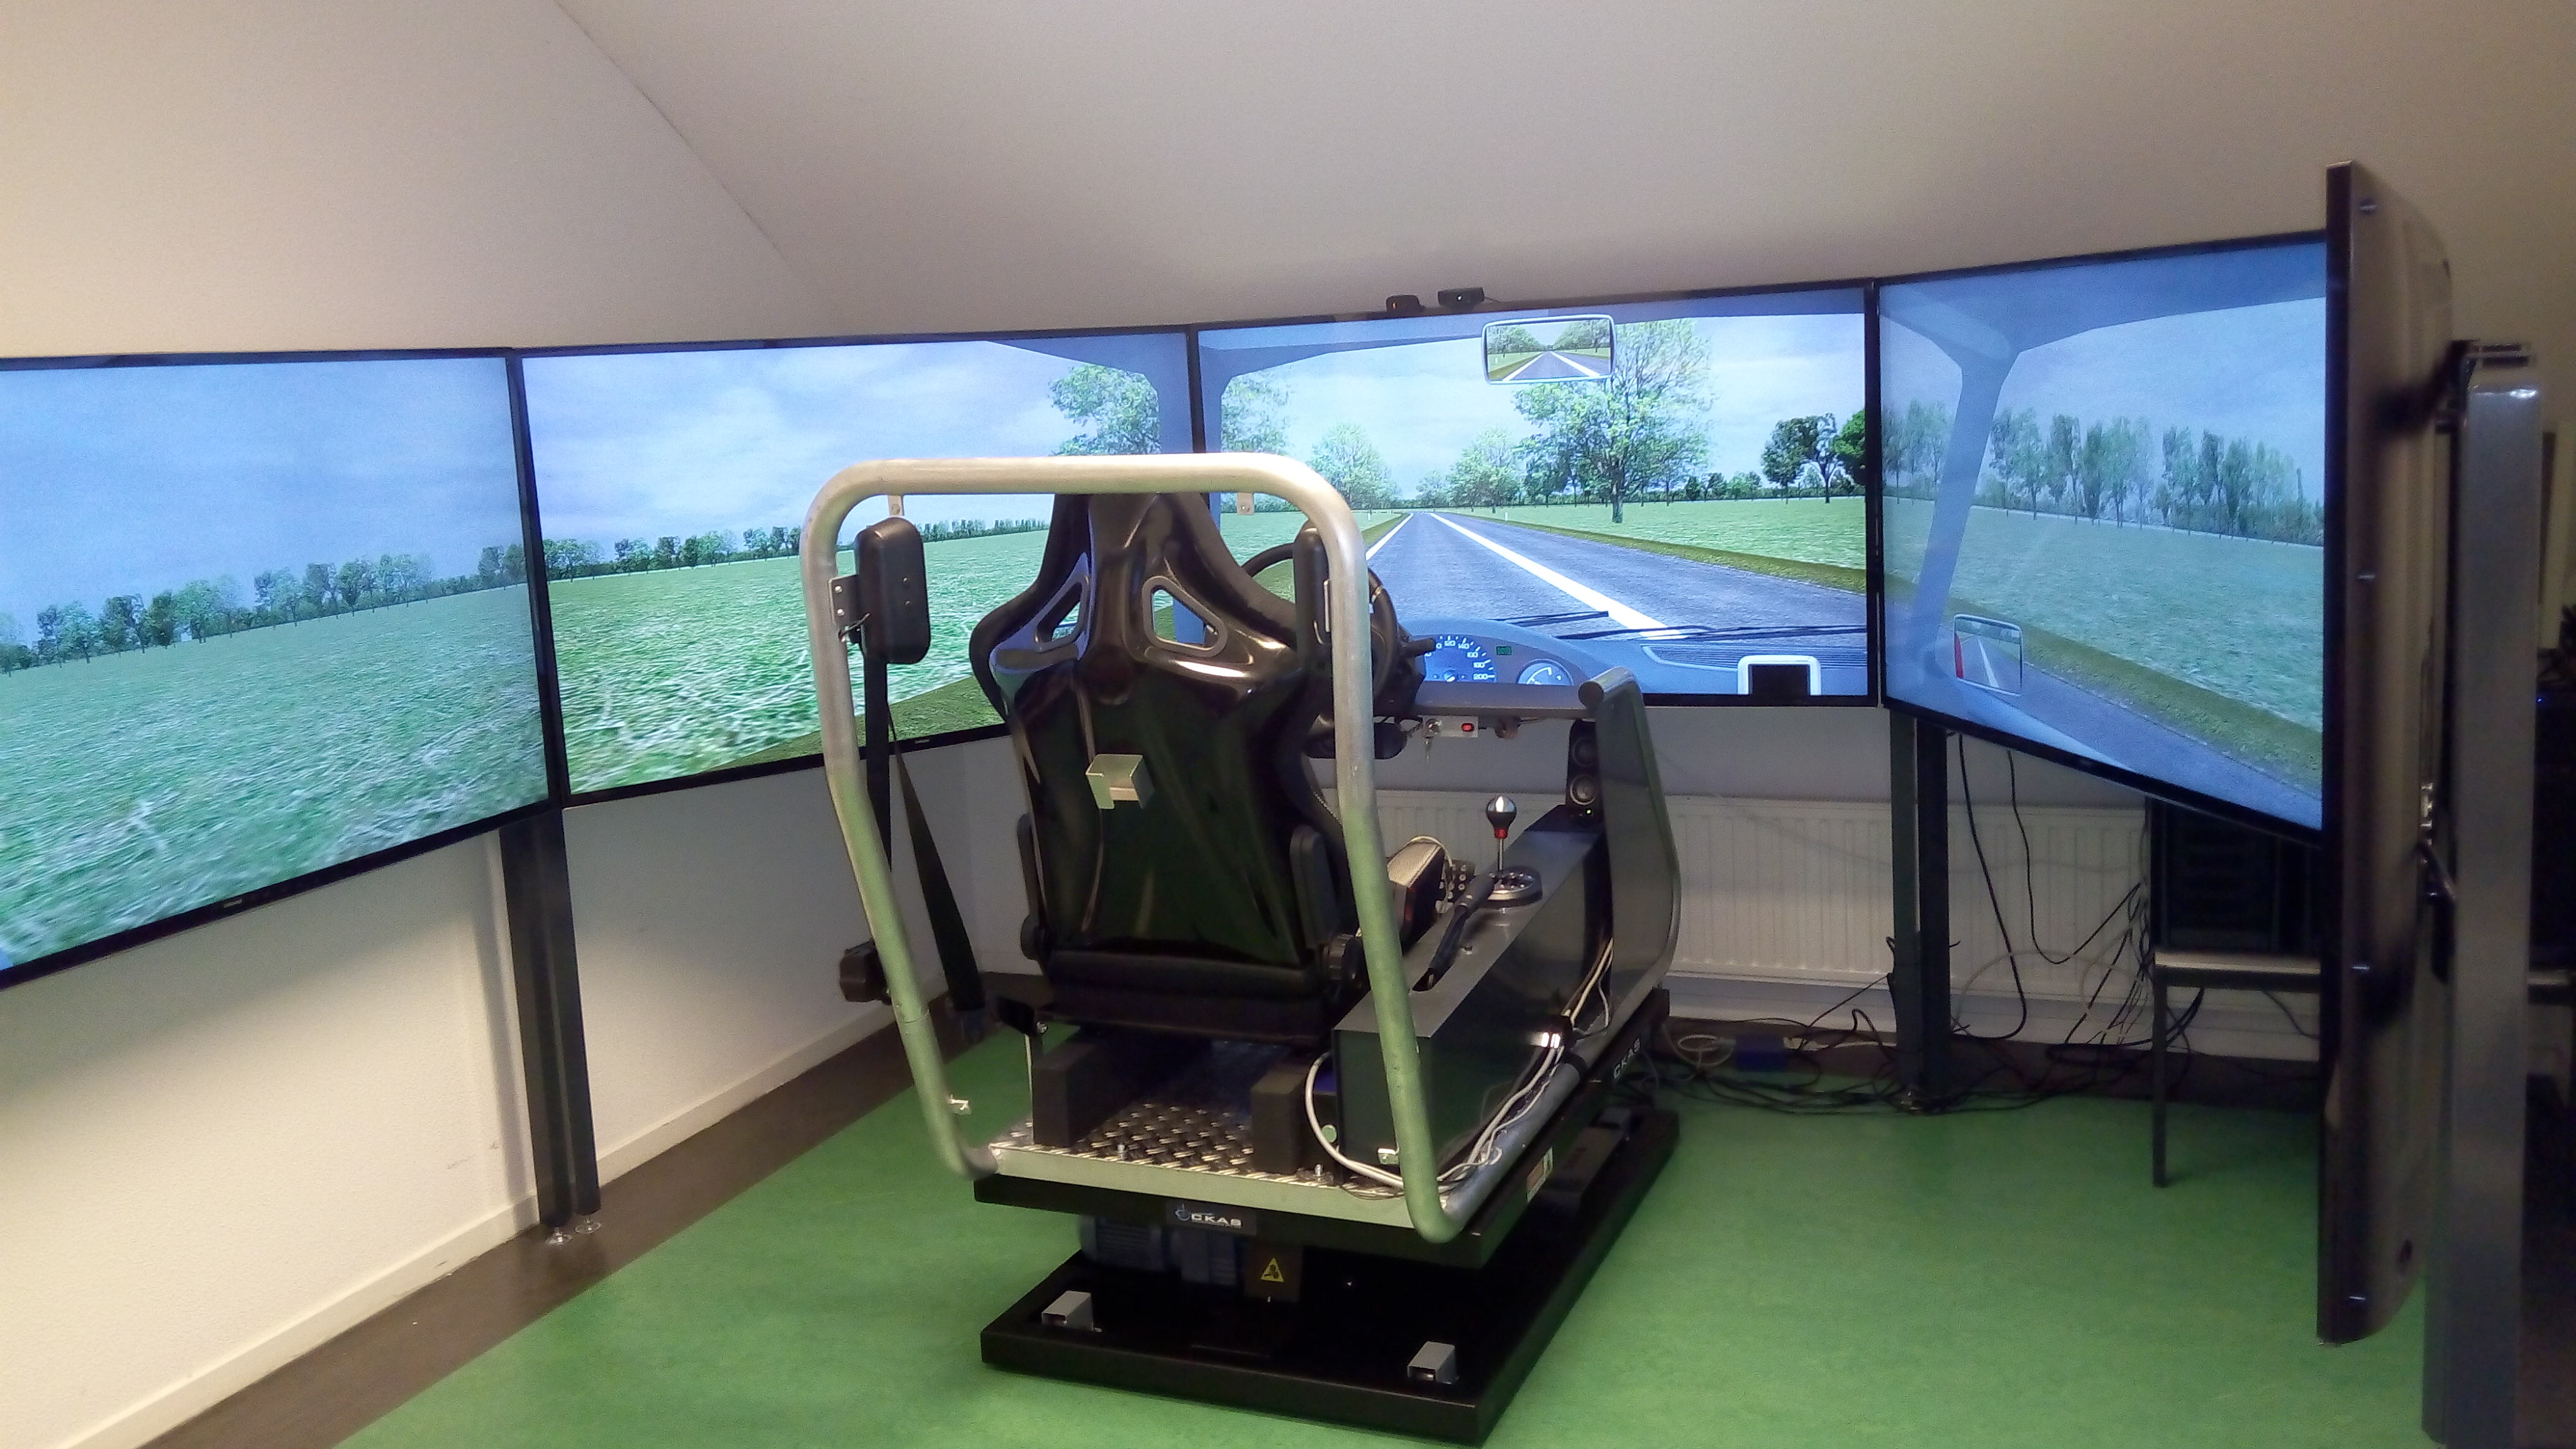 Our new (since September 2016) driving simulator A with five large screens and ... a moving base